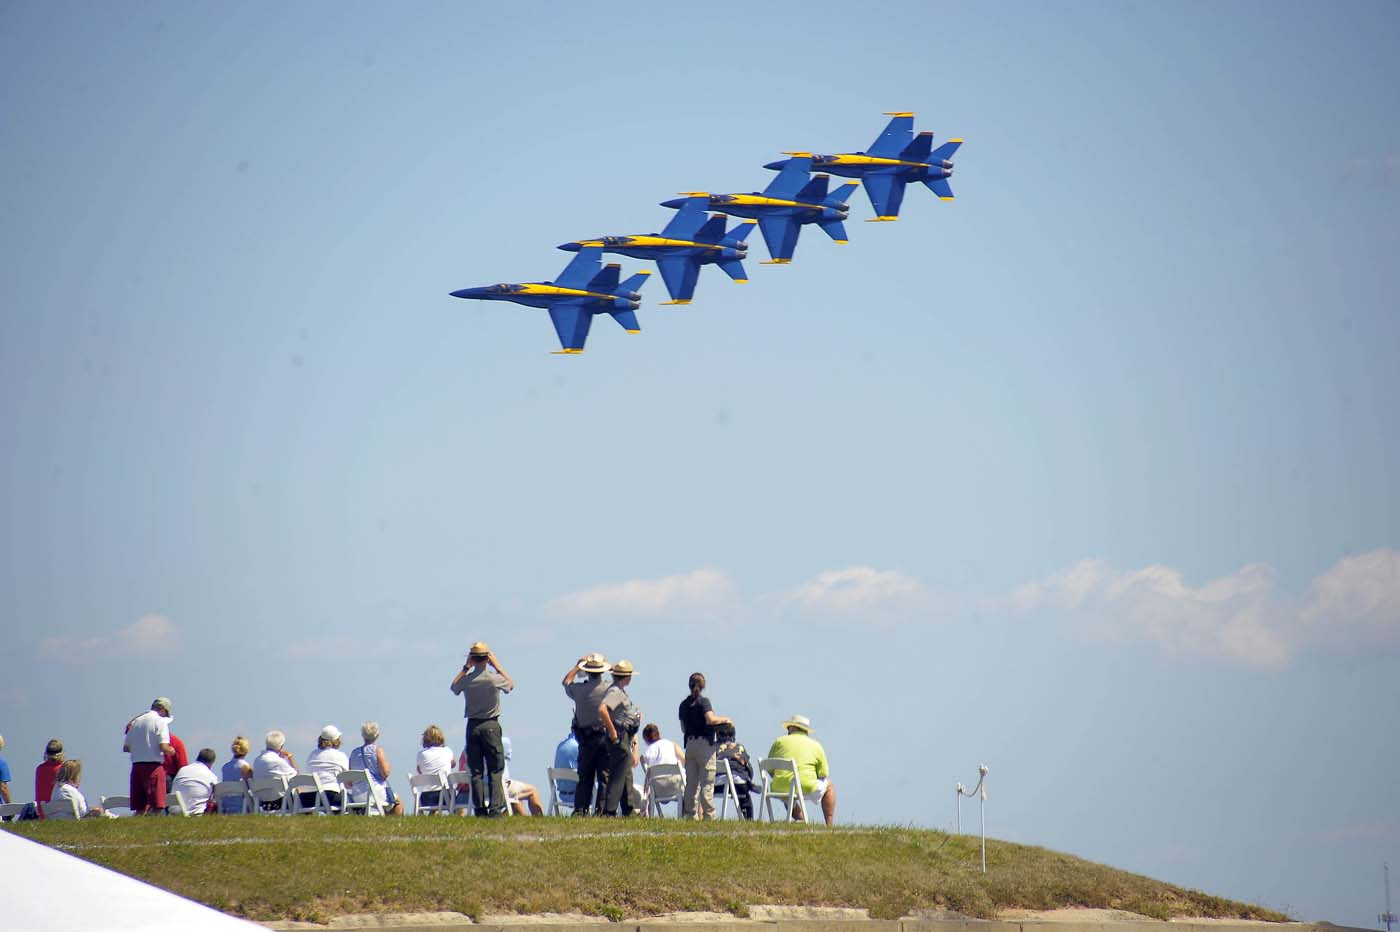 The Blue Angels - Boeing F/A-18 Super Hornet planes - fly in formation past spectators on a bastion of Fort McHenry, participating in the air show during the weekend-long Star Spangled Sailabration 200 Saturday, Jun 16, 2012. (Karl Merton Ferron/Baltimore Sun)